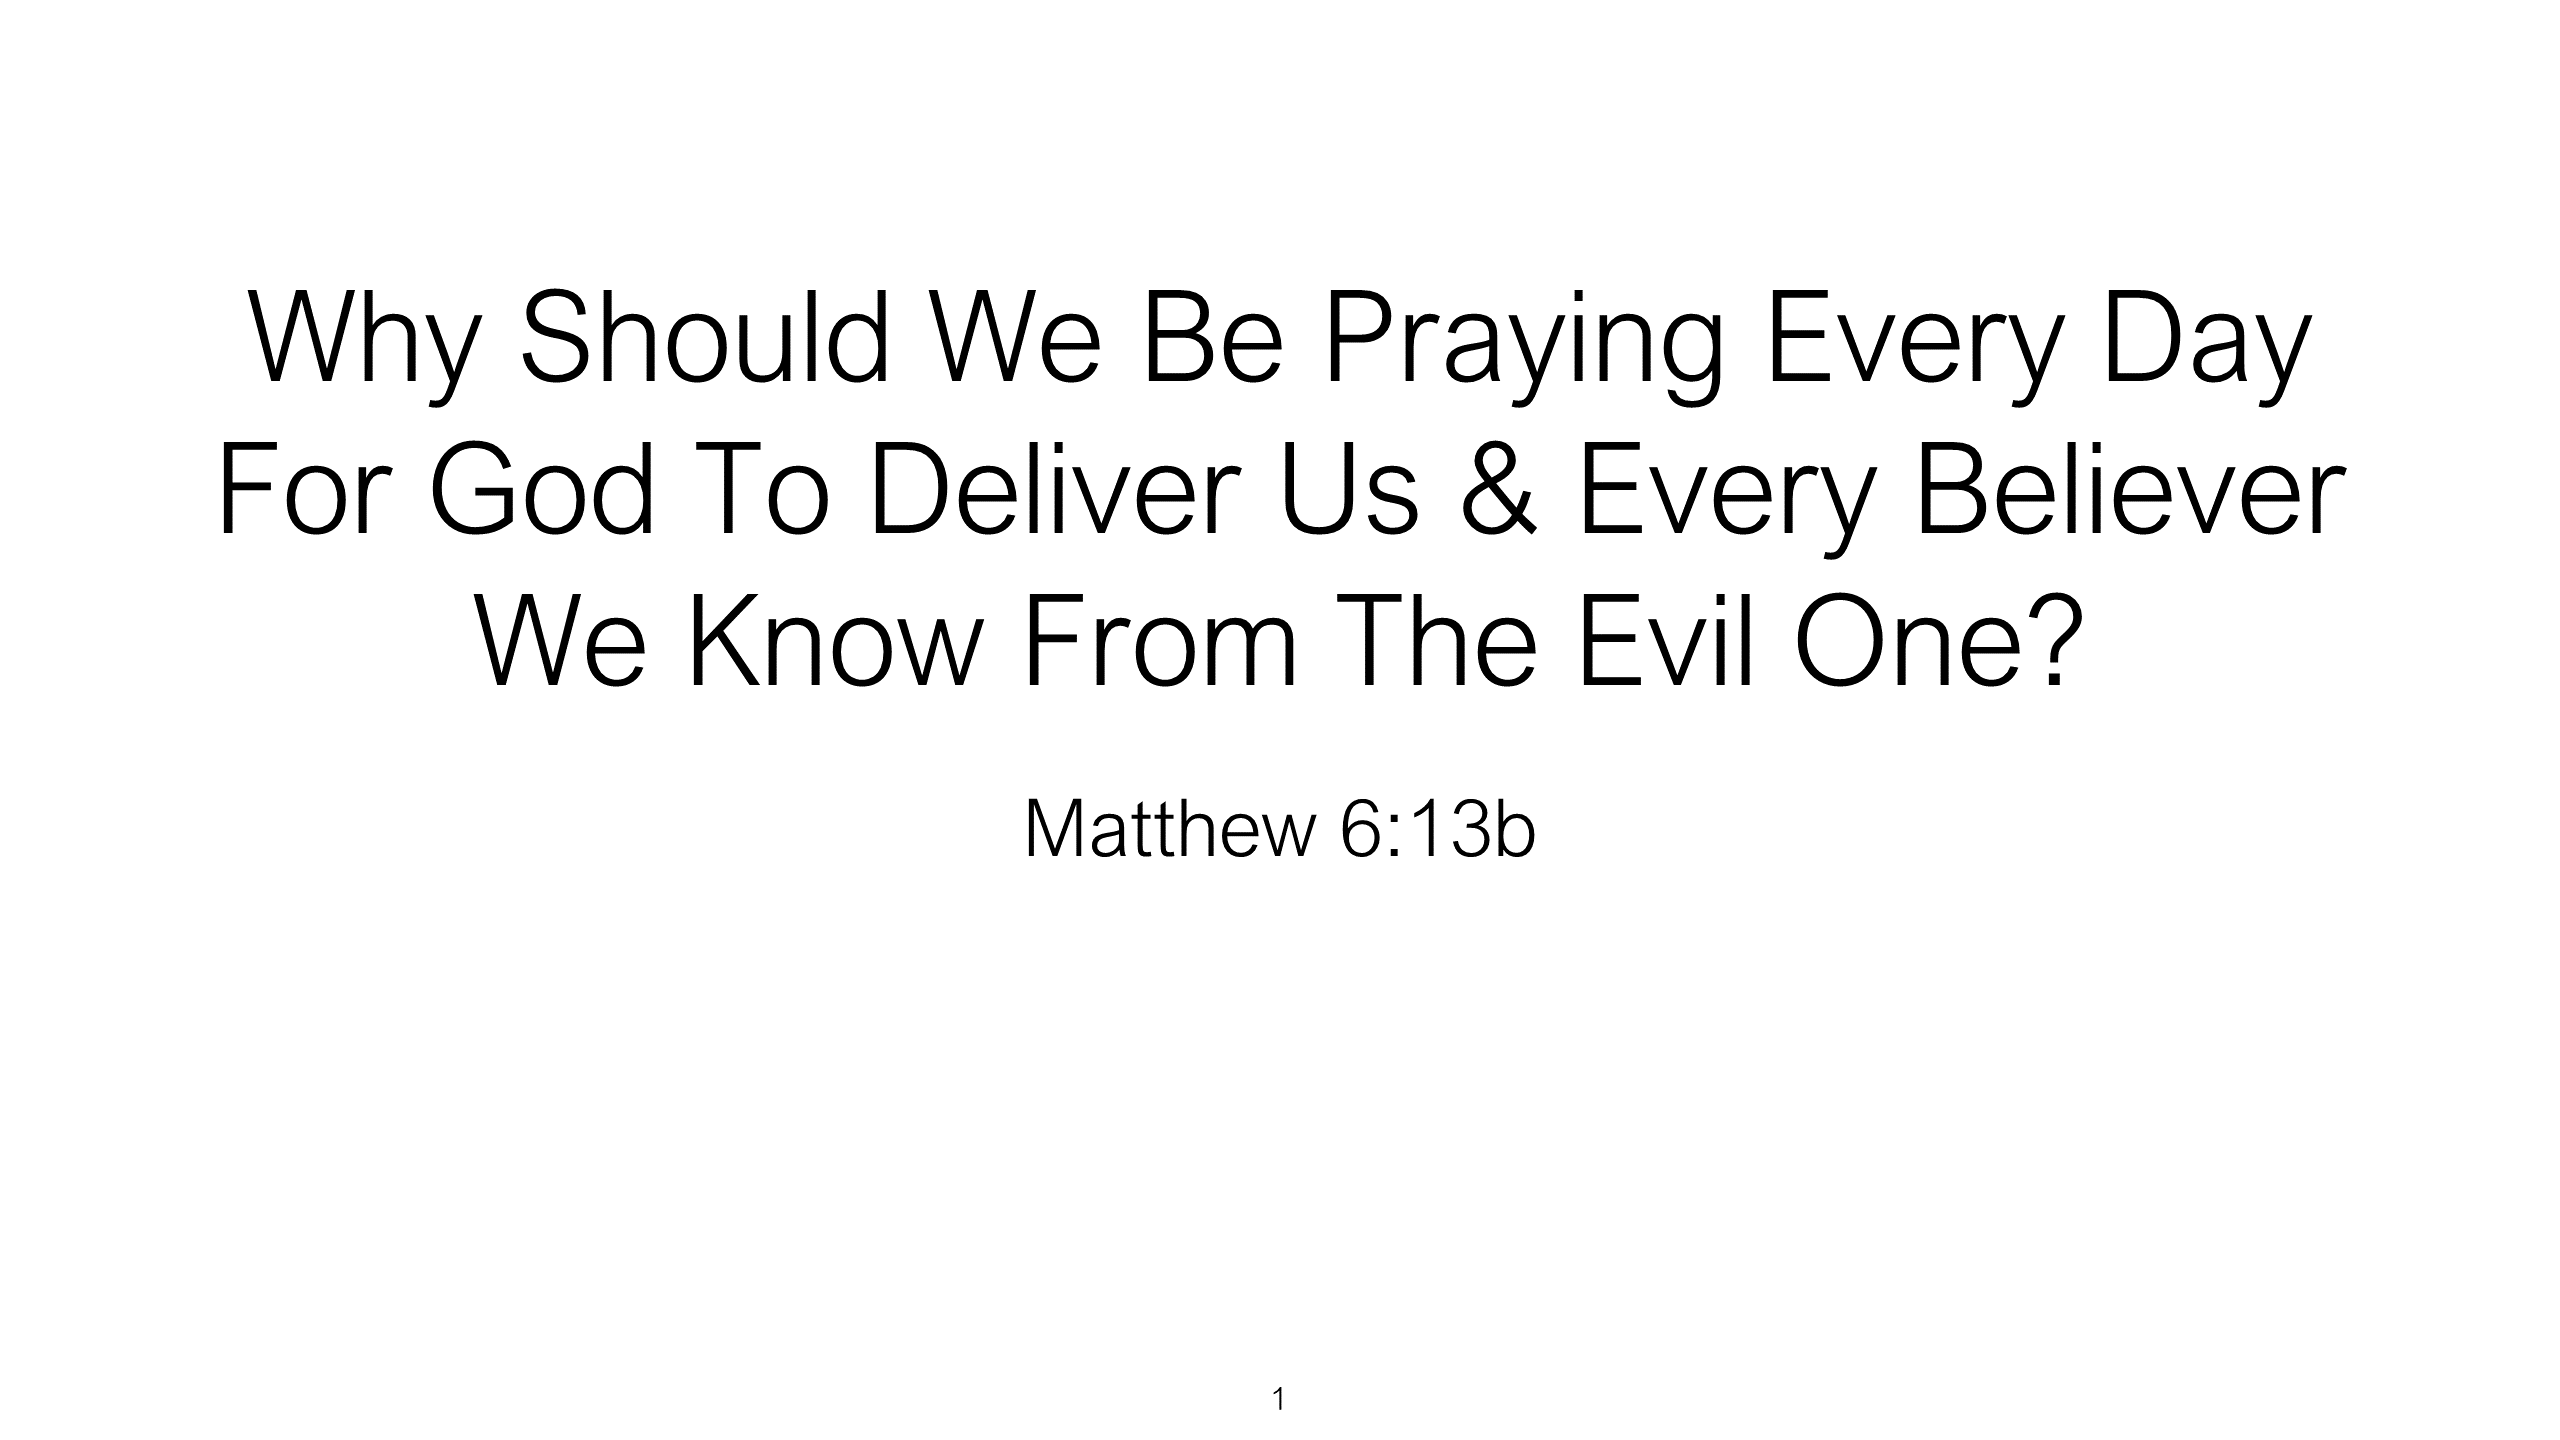 SWS-11 - Why Should We Be Praying Every Day For God To Deliver Us And Every Believer We Know From The Evil One (1)